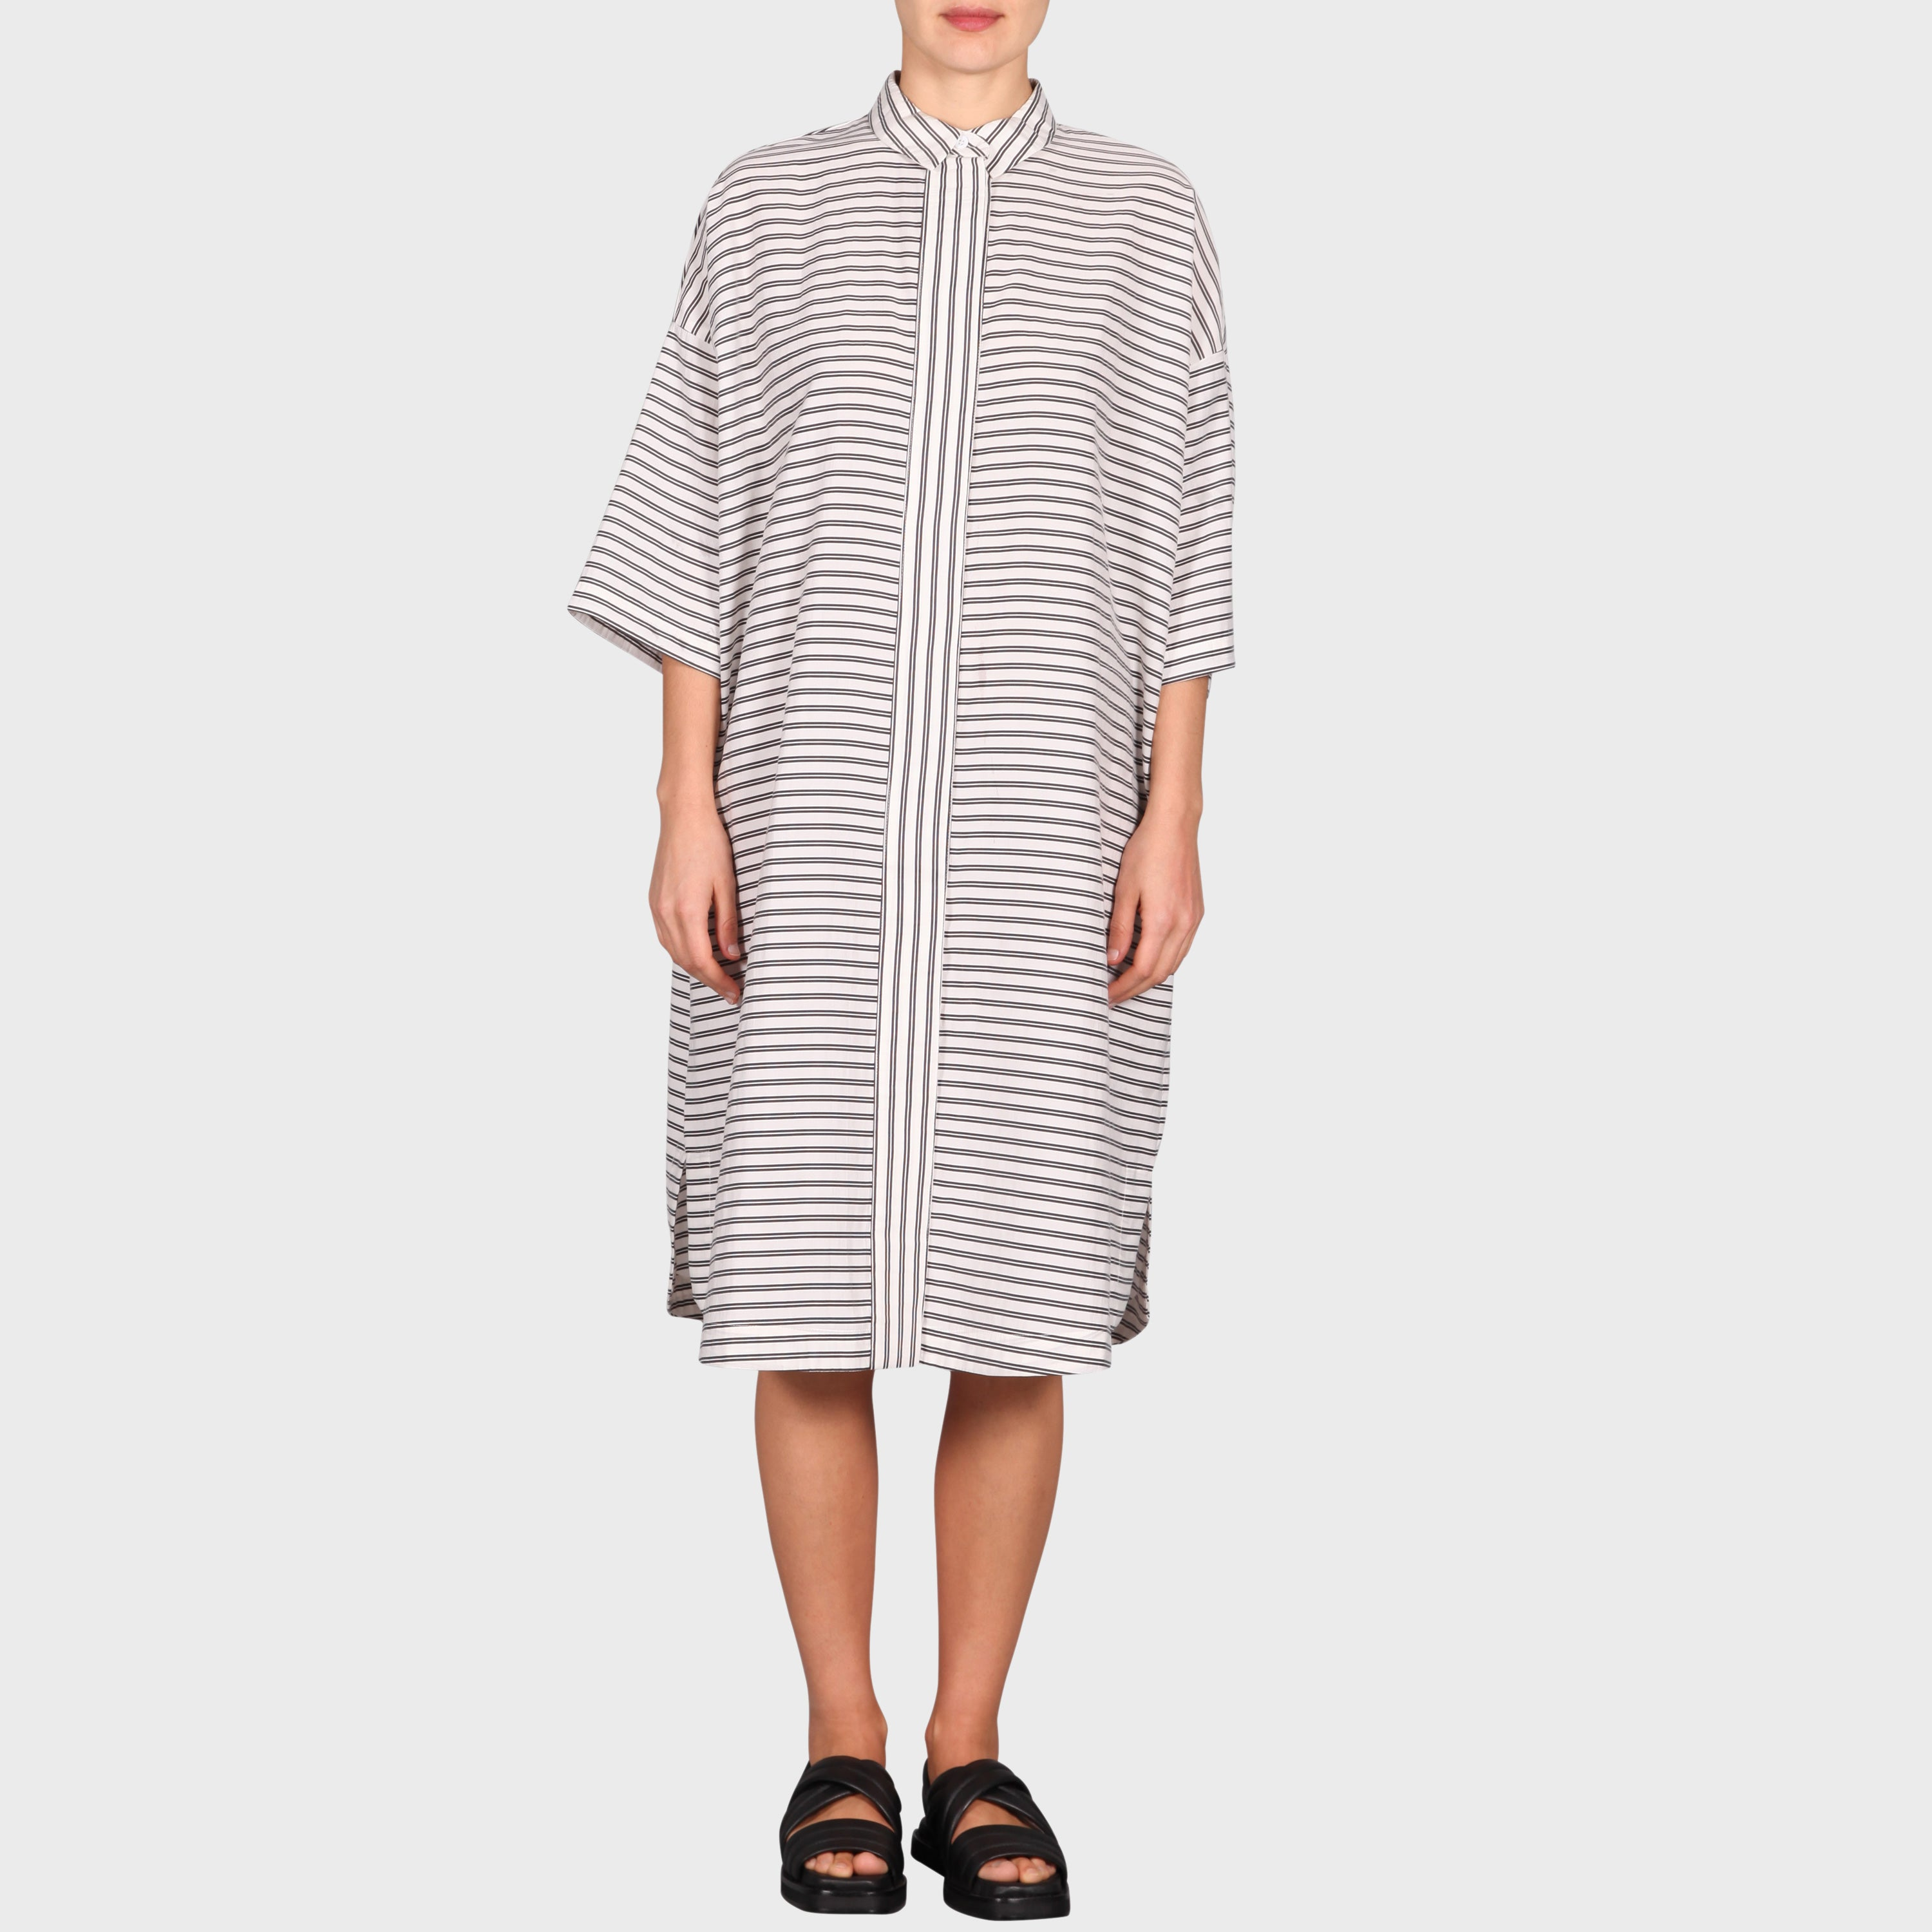 BENH DRESS / WHITE-BLACK